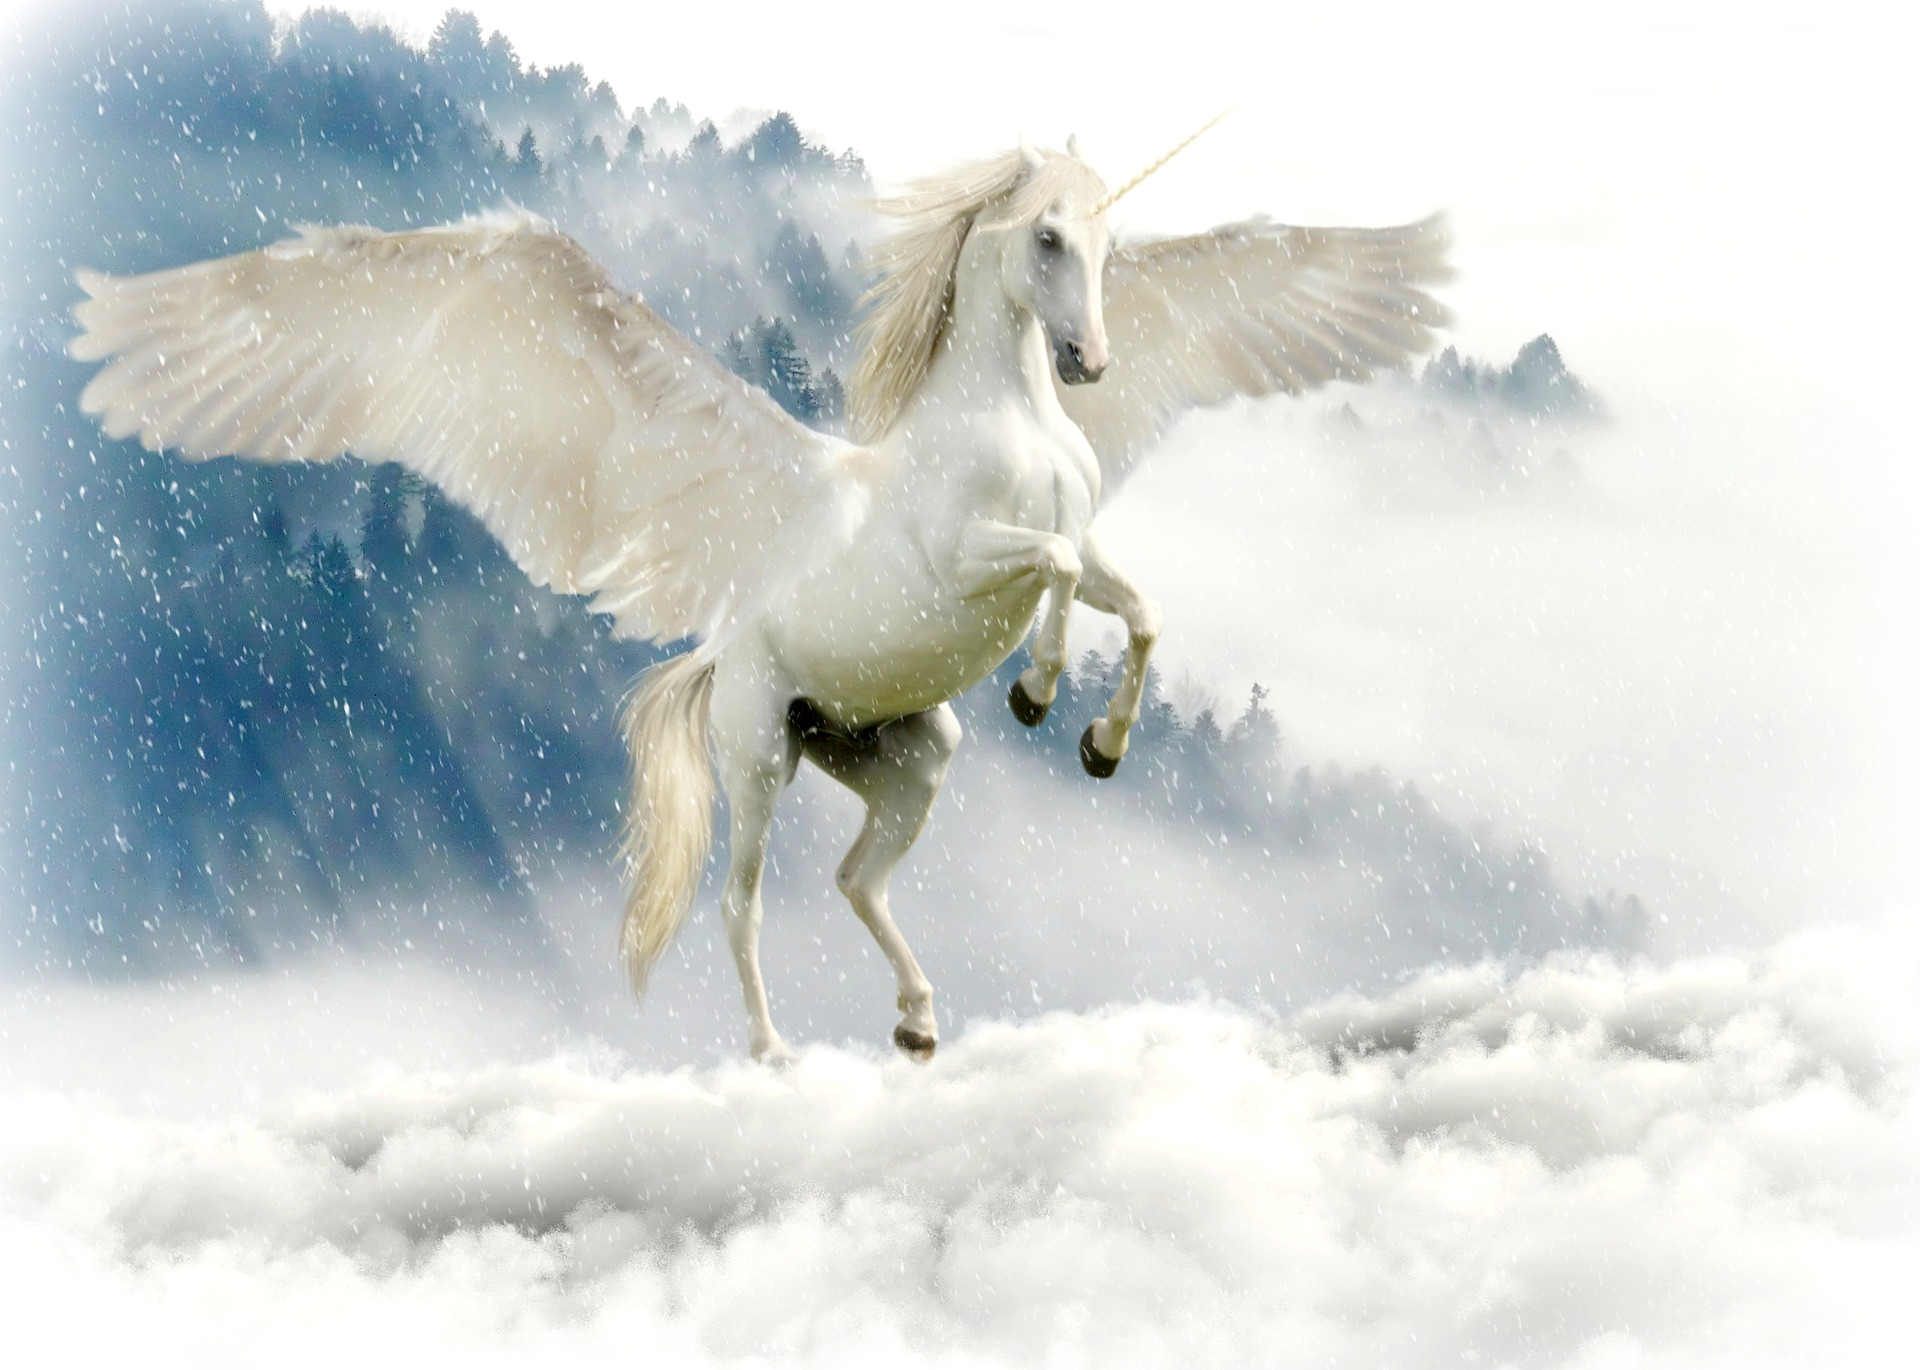 Unicorn independent contractor misclassification